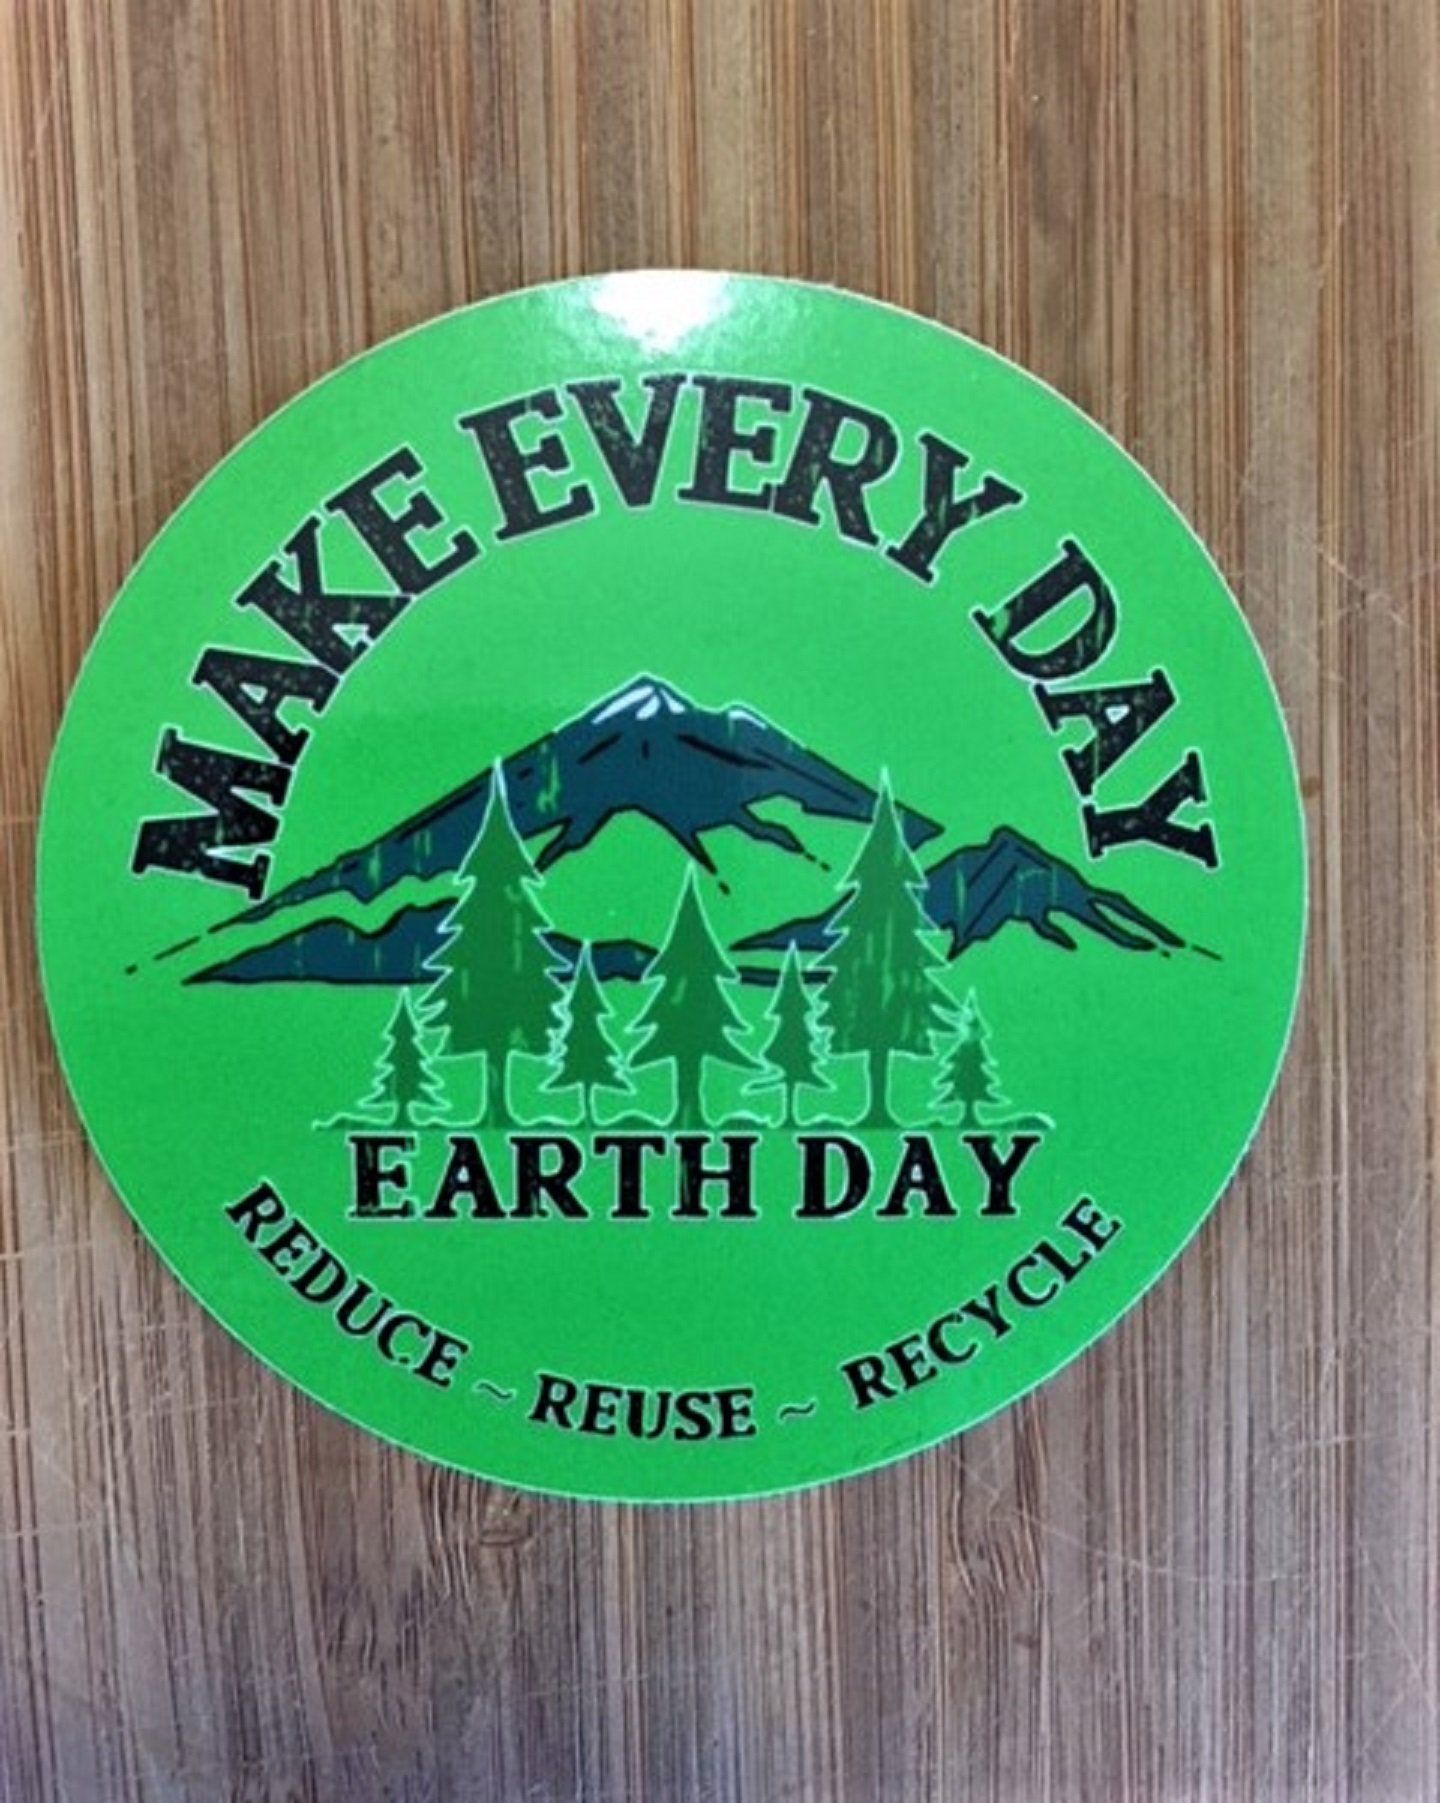 Make Every Day Earth Sticker Handmade Earth Projects How To Make Save Earth [ 1803 x 1440 Pixel ]